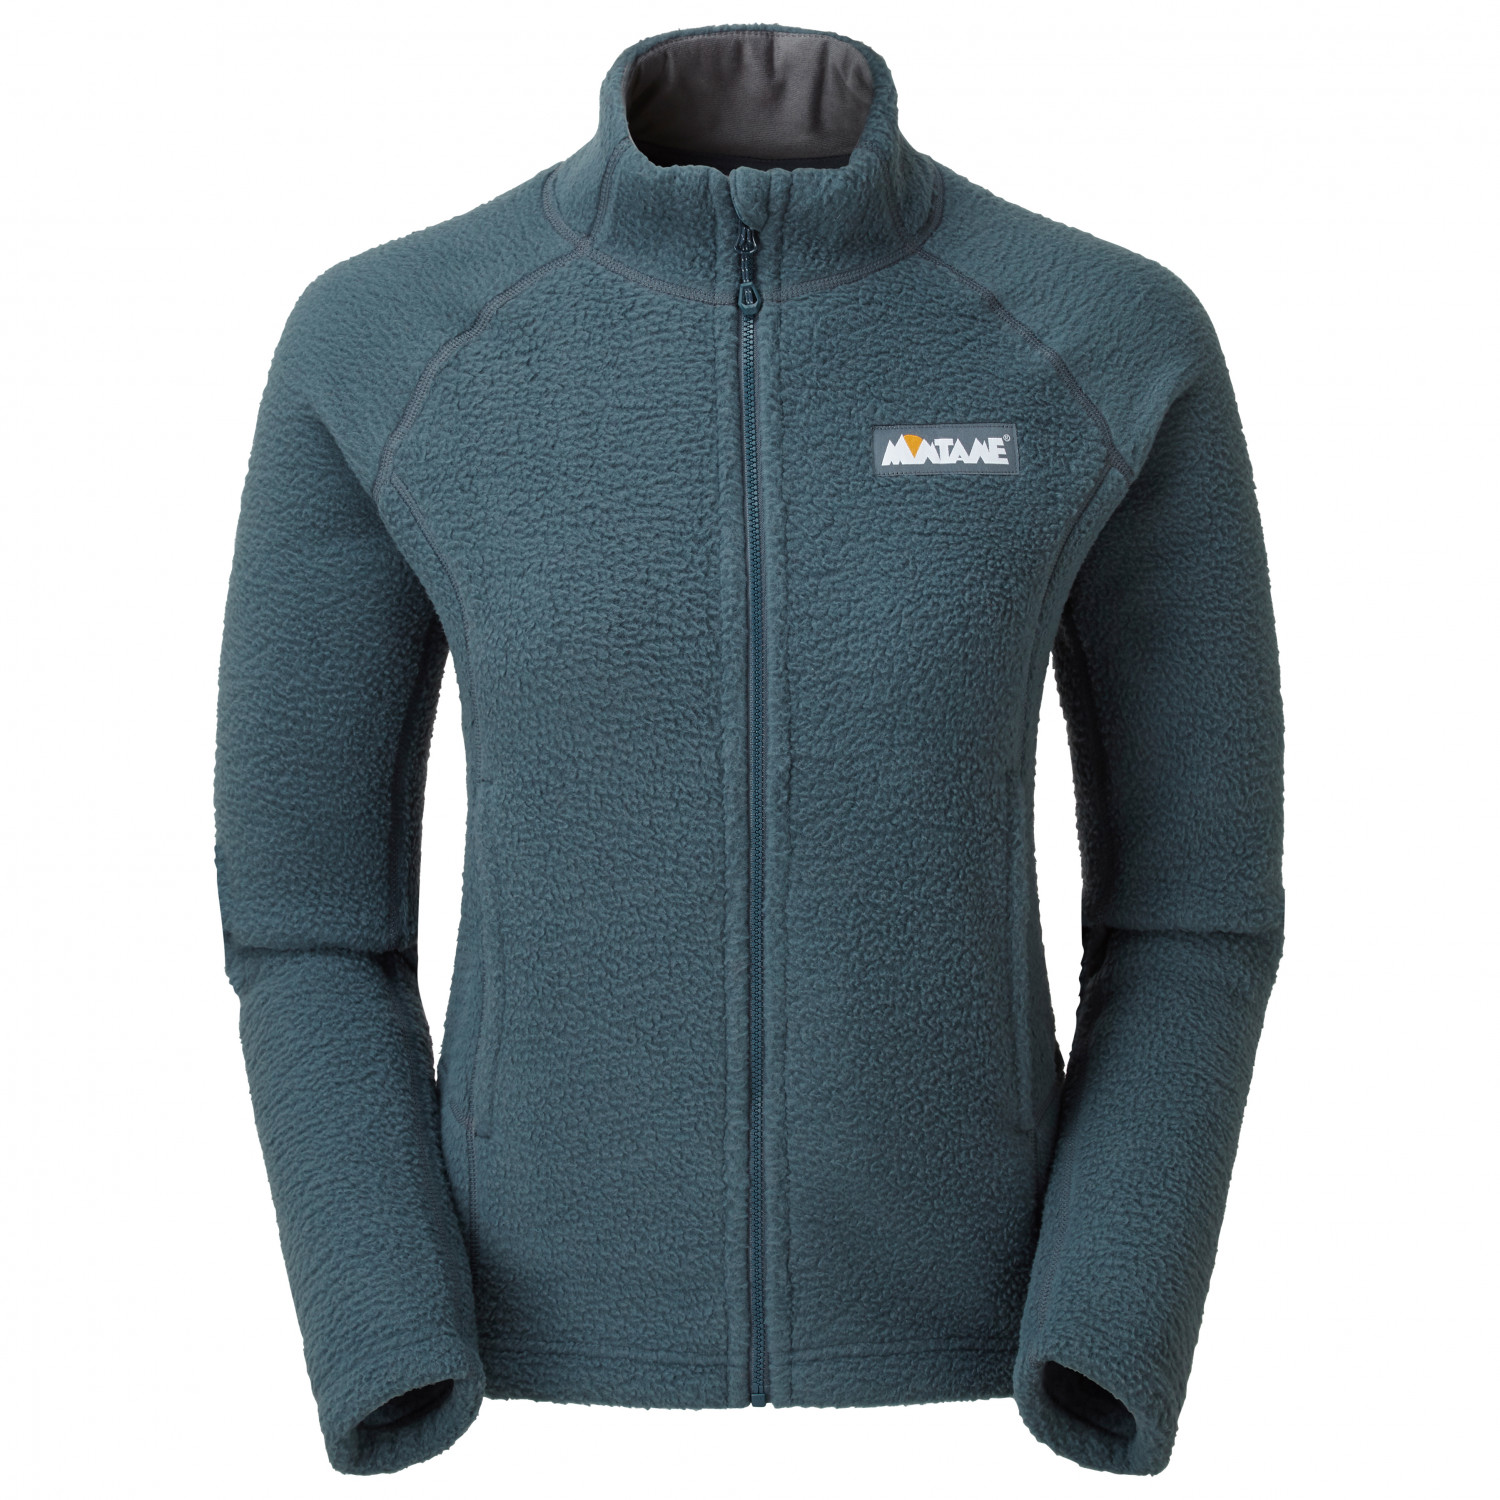 Montane Womens Tundra Jacket Top Blue Sports Outdoors Full Zip Breathable